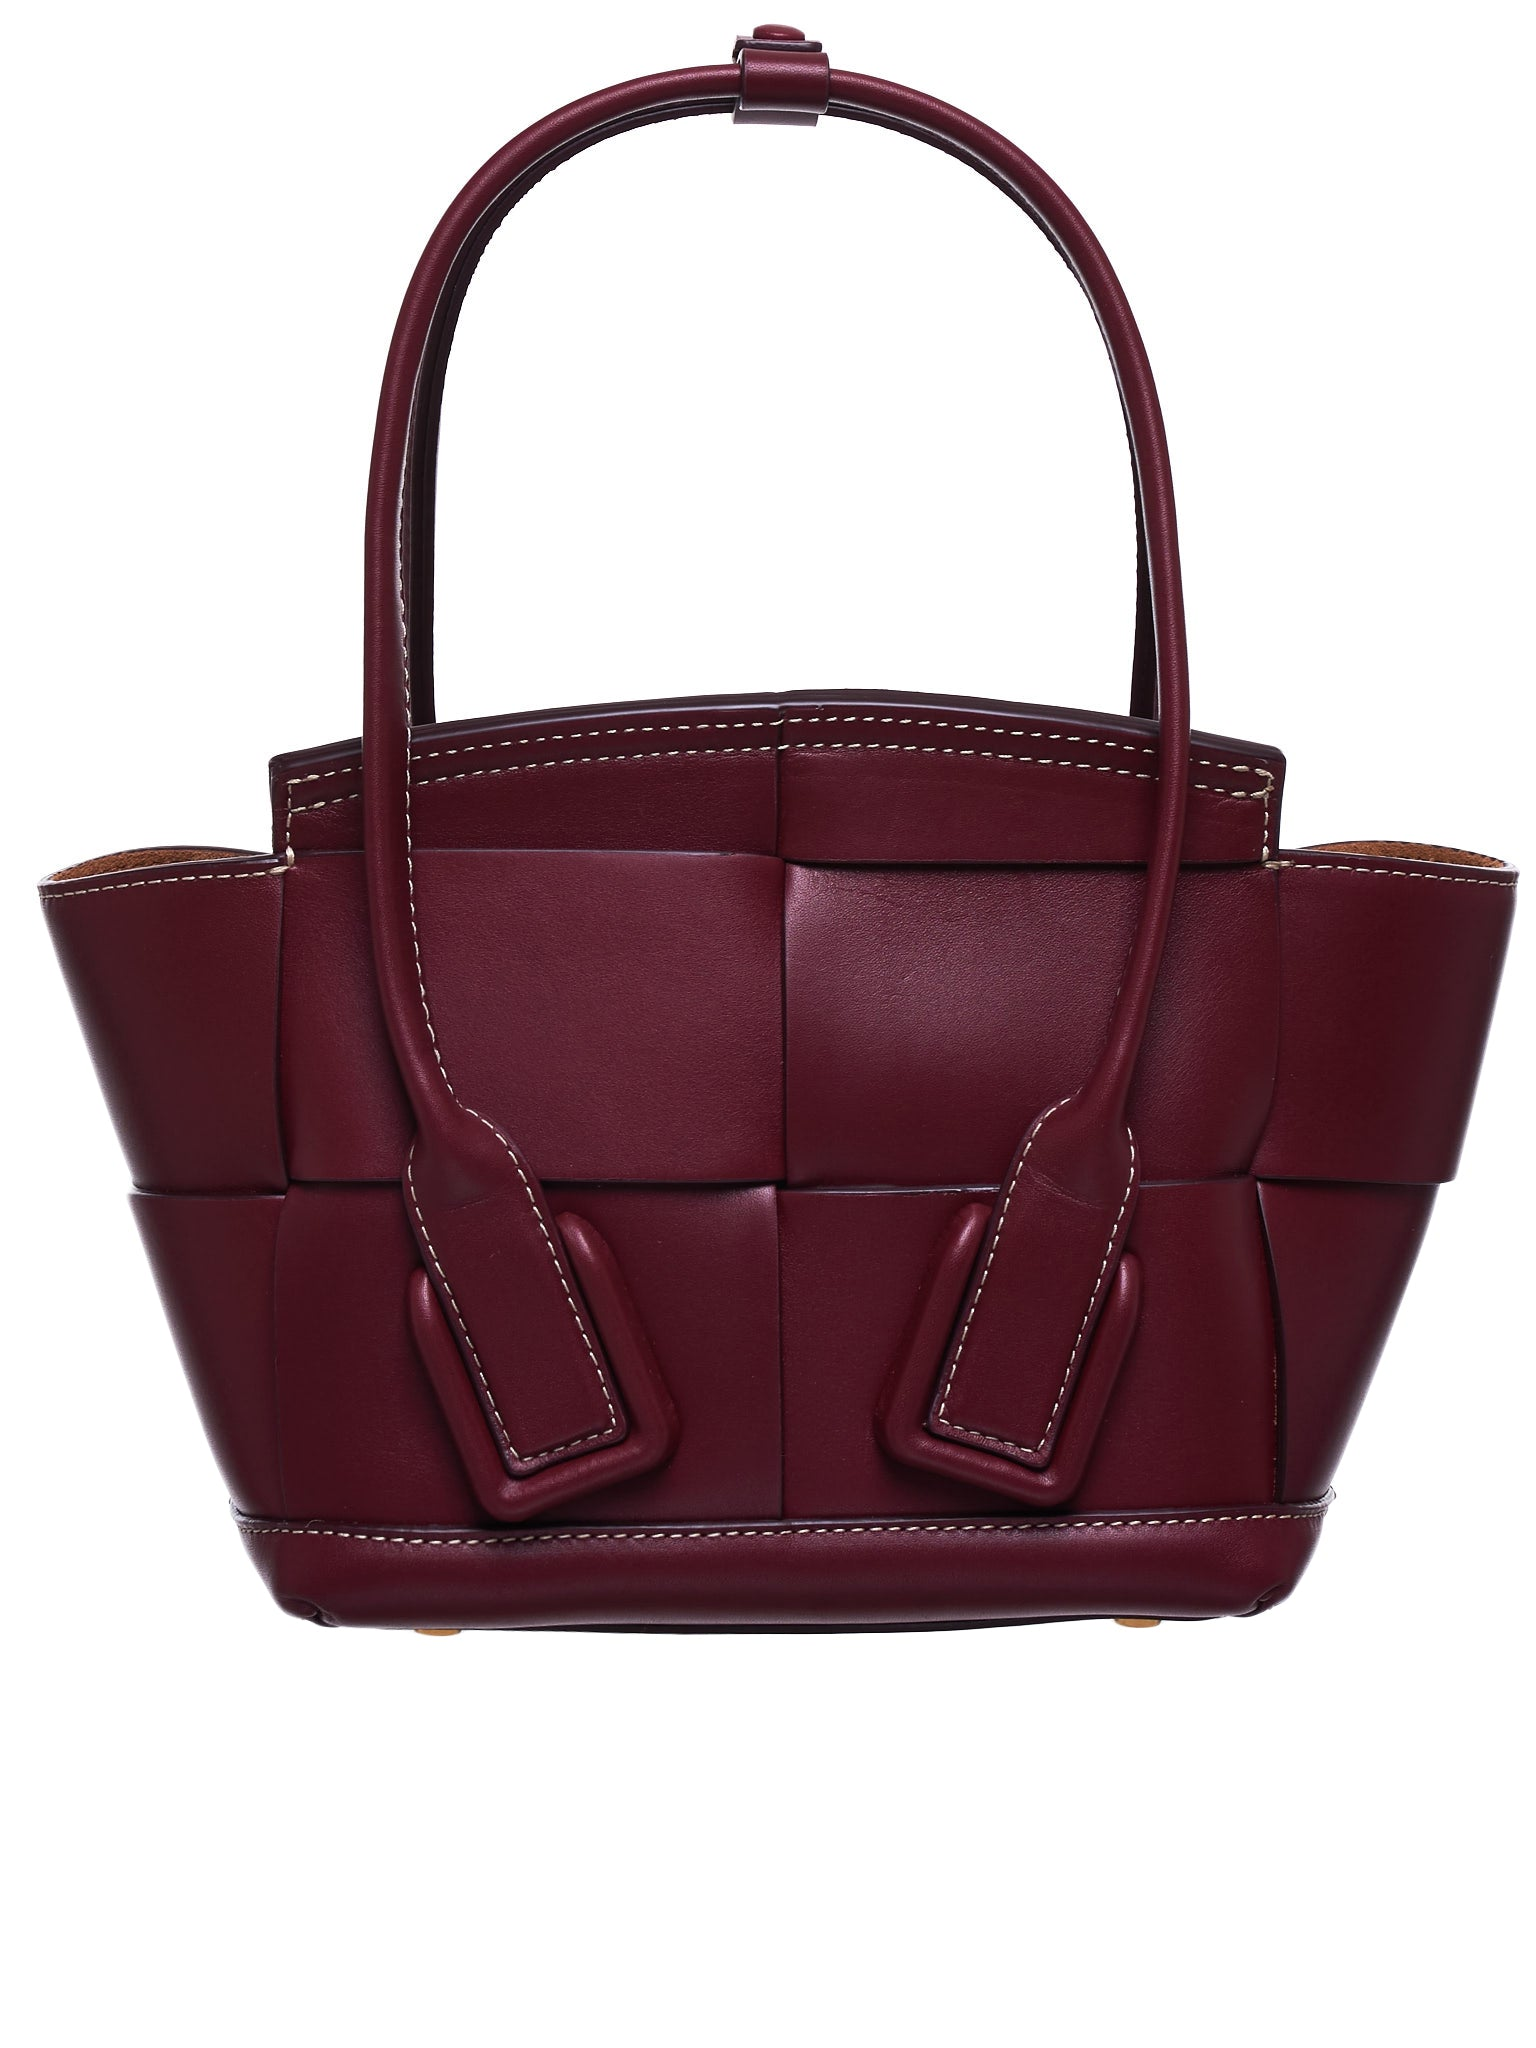 Arco Bag (600606VMAP1-6206-BORDEAUX-GOLD)